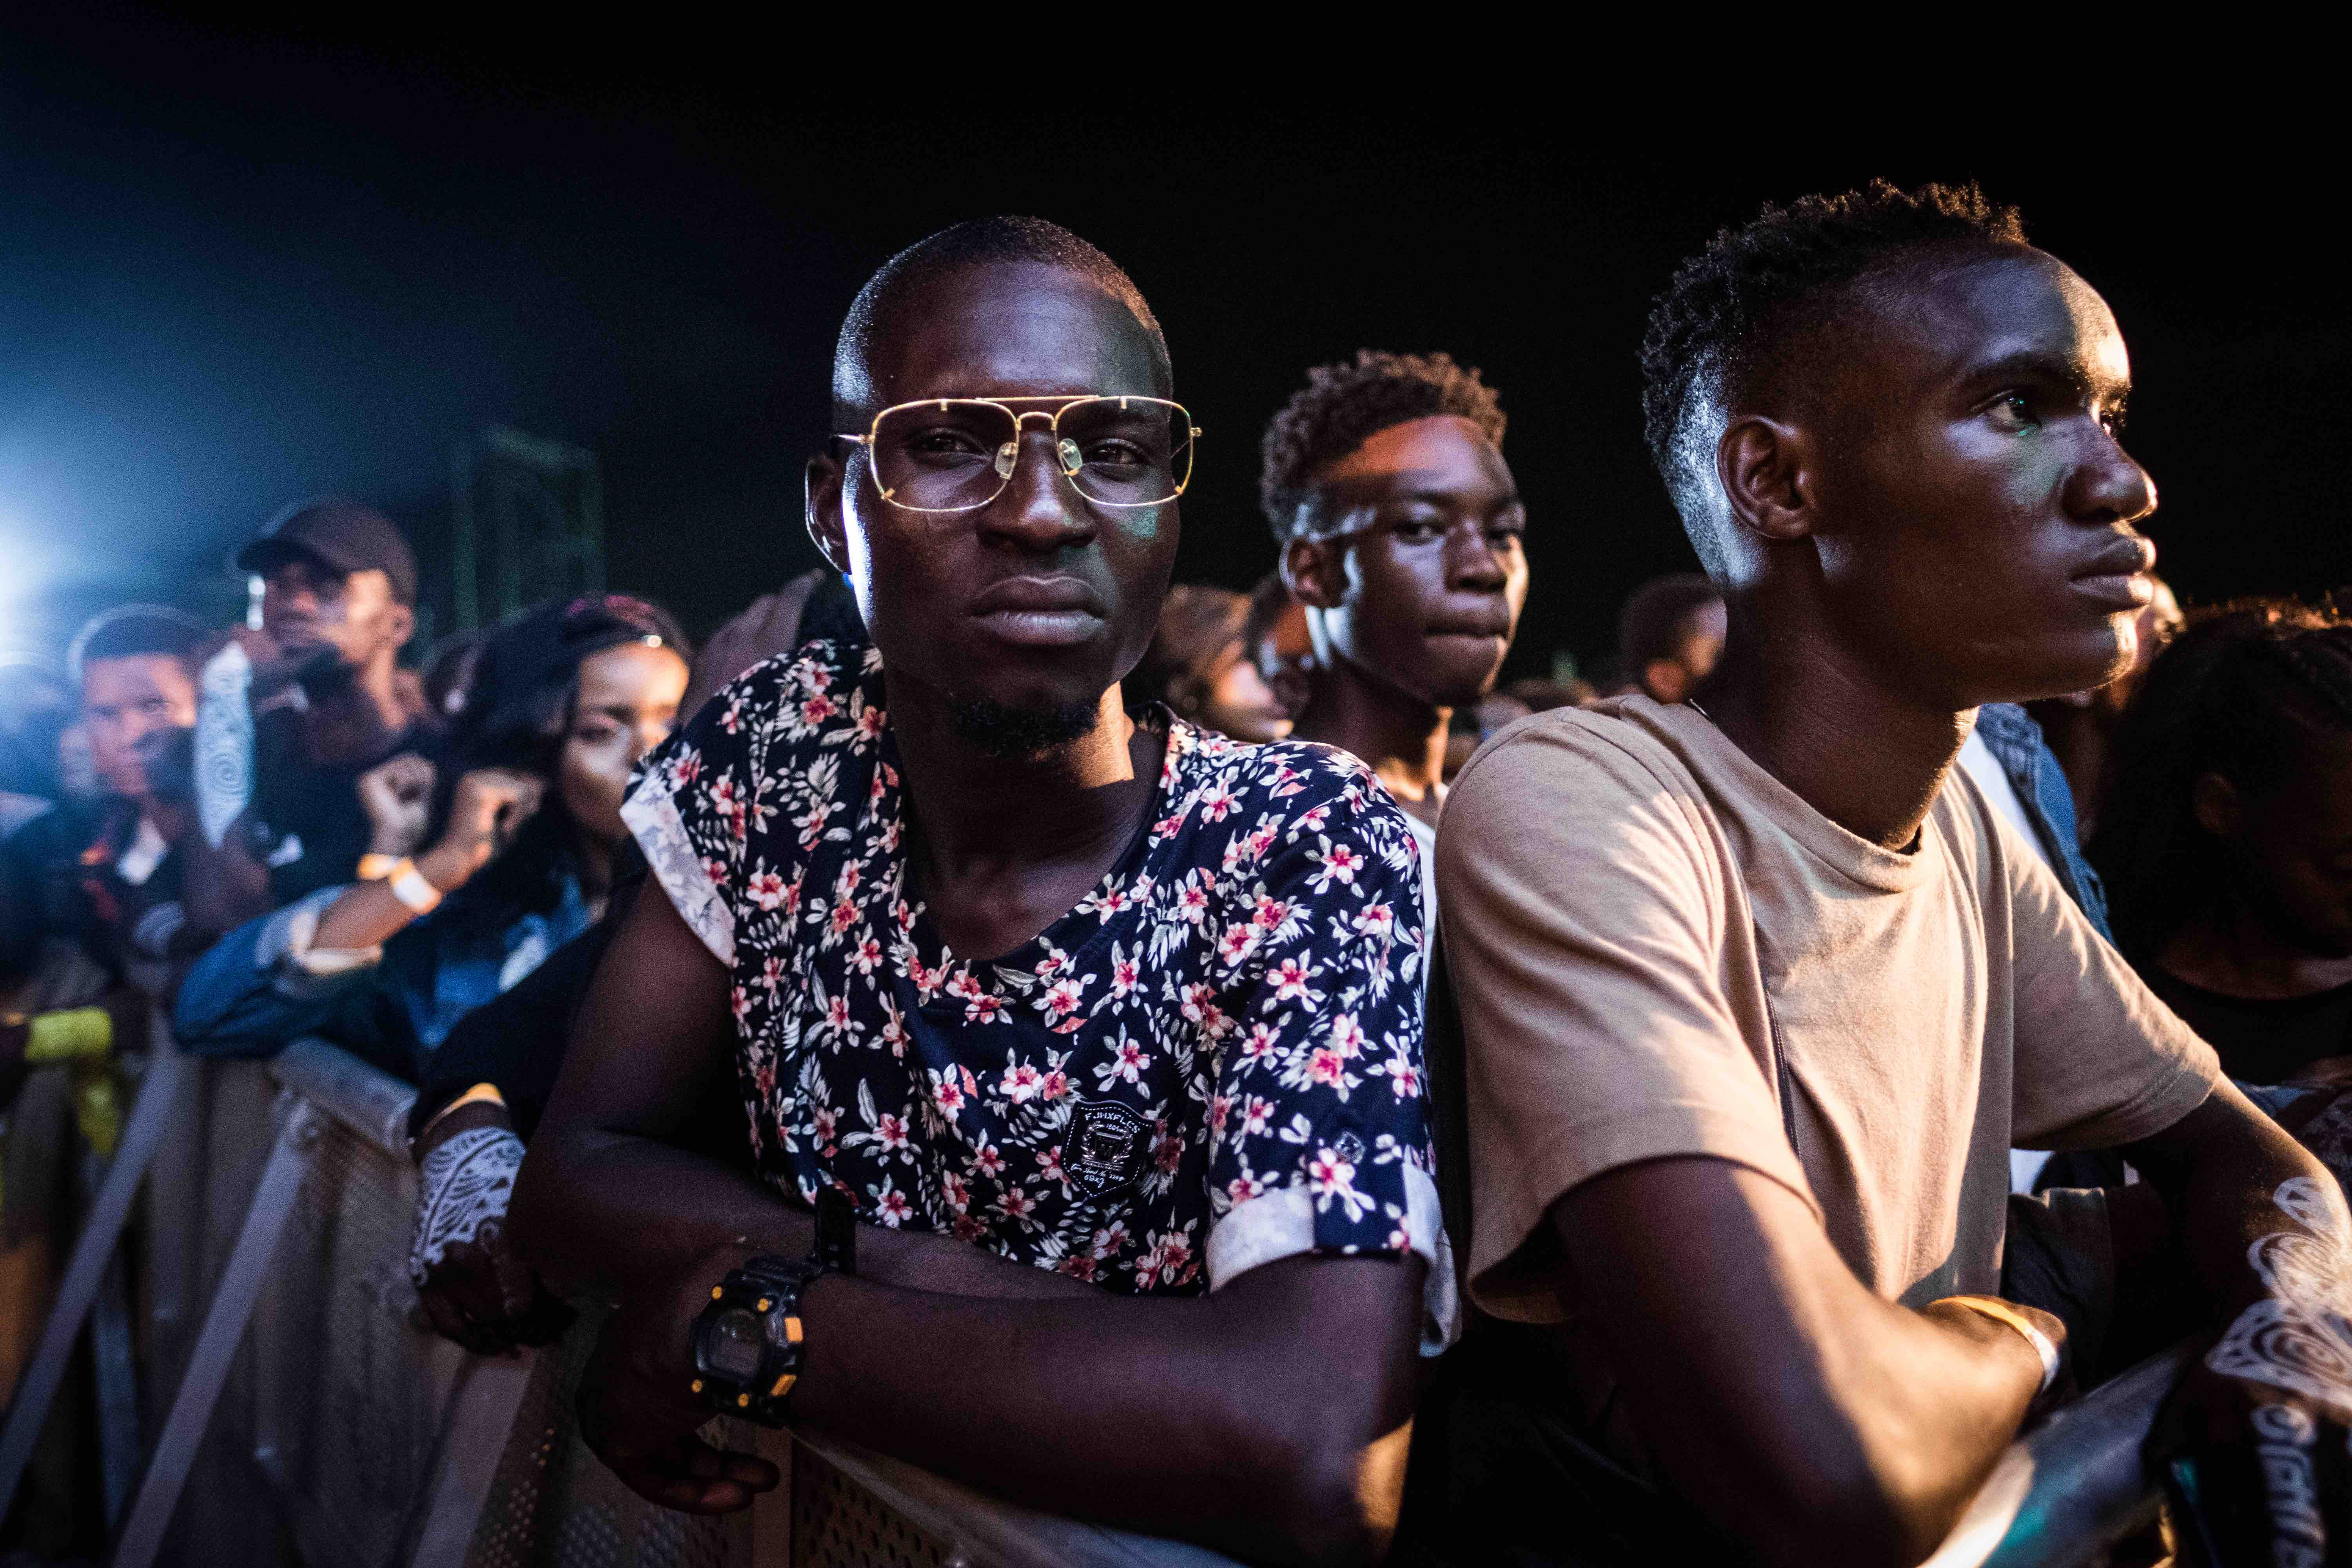 Meet the Gidi Tribe: Nigeria's coolest new youth movement